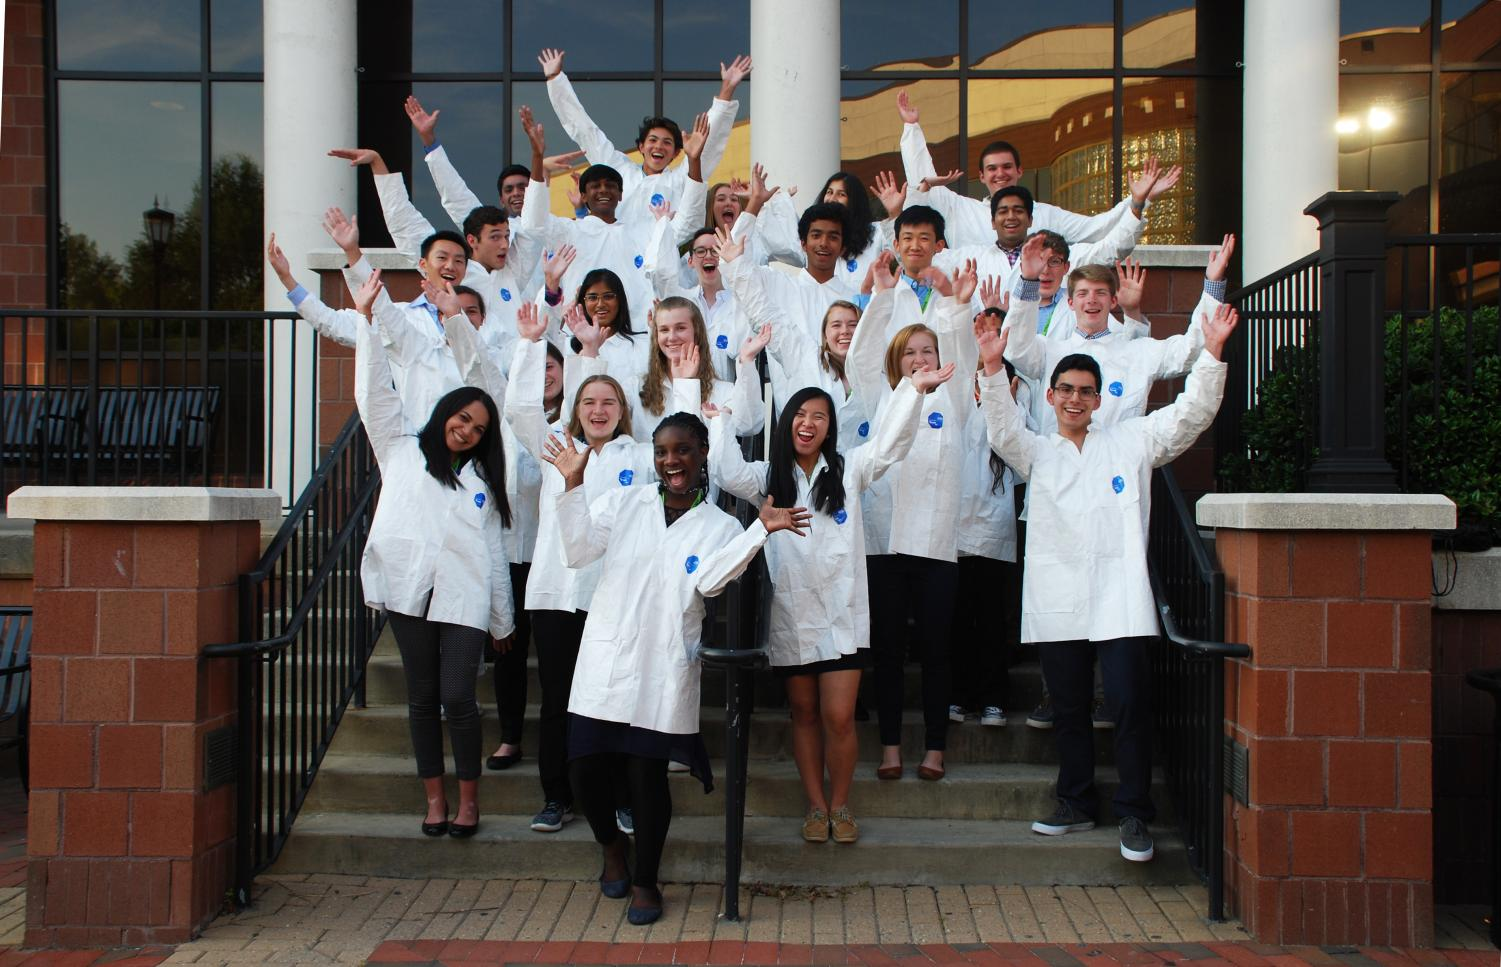 Students at the Governor's School for Medicine and Health Sciences are presented with a white lab coat after convocation.